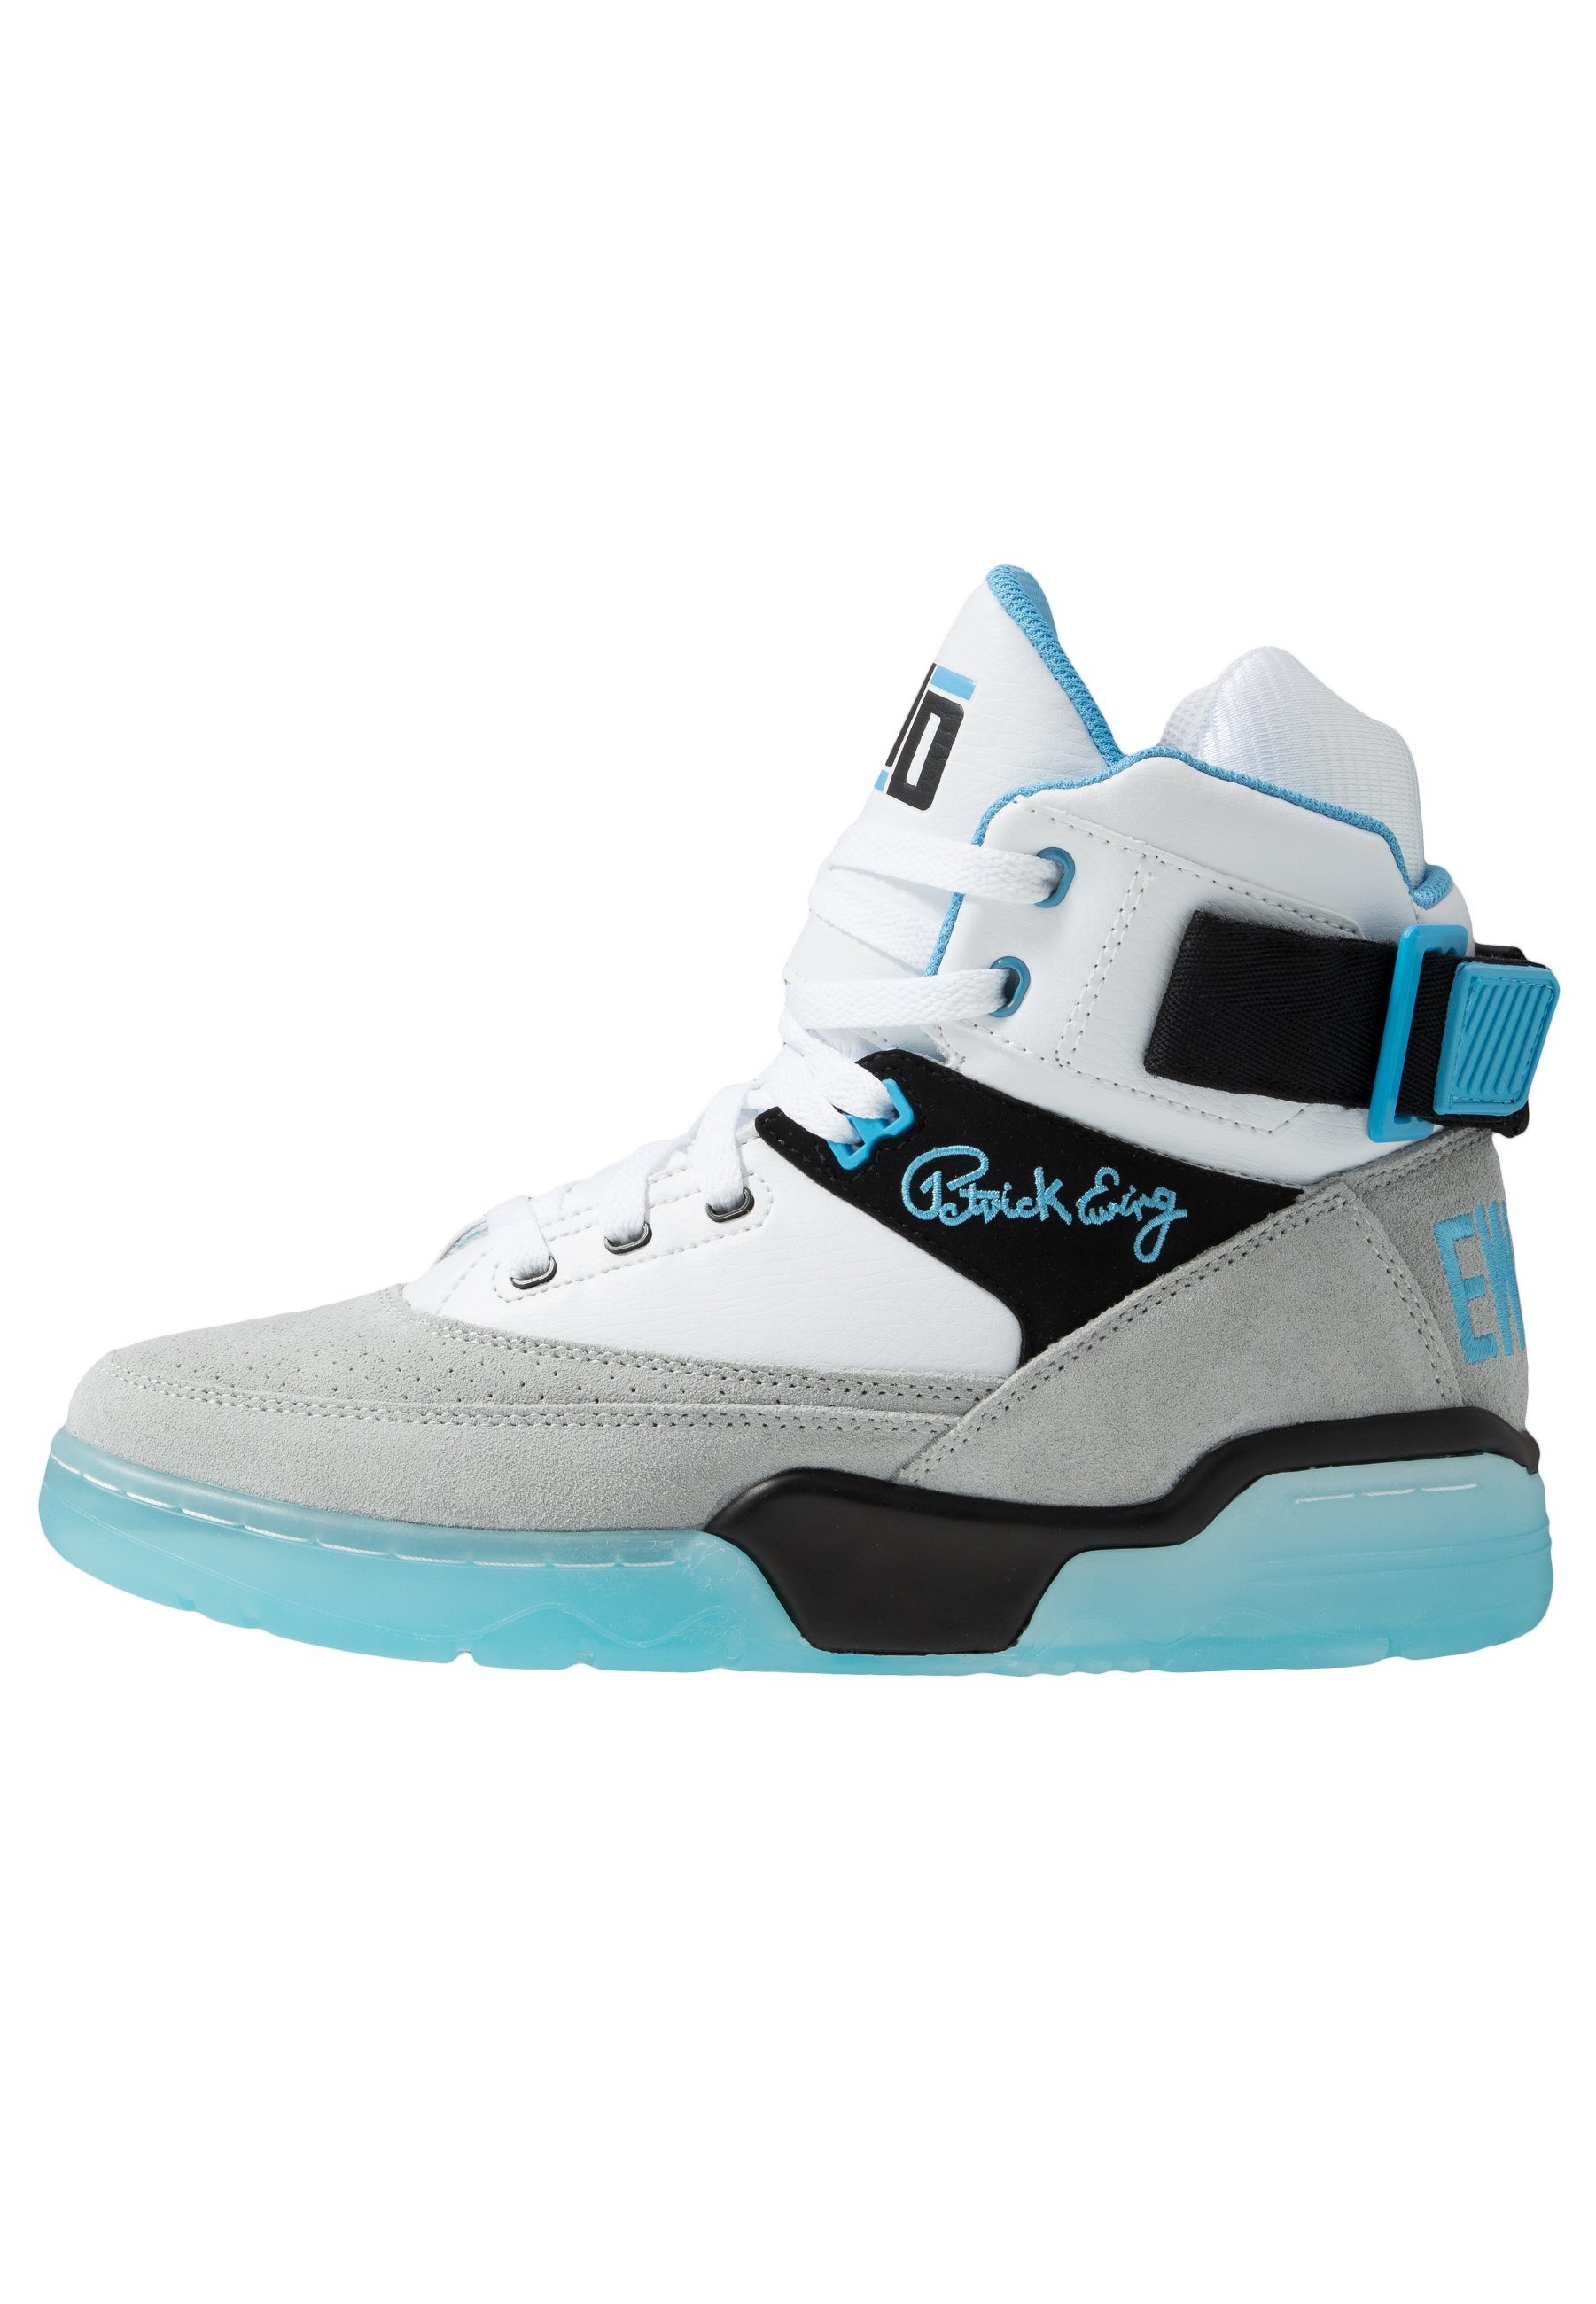 33 EPMD Baskets montantes whitegreyblue